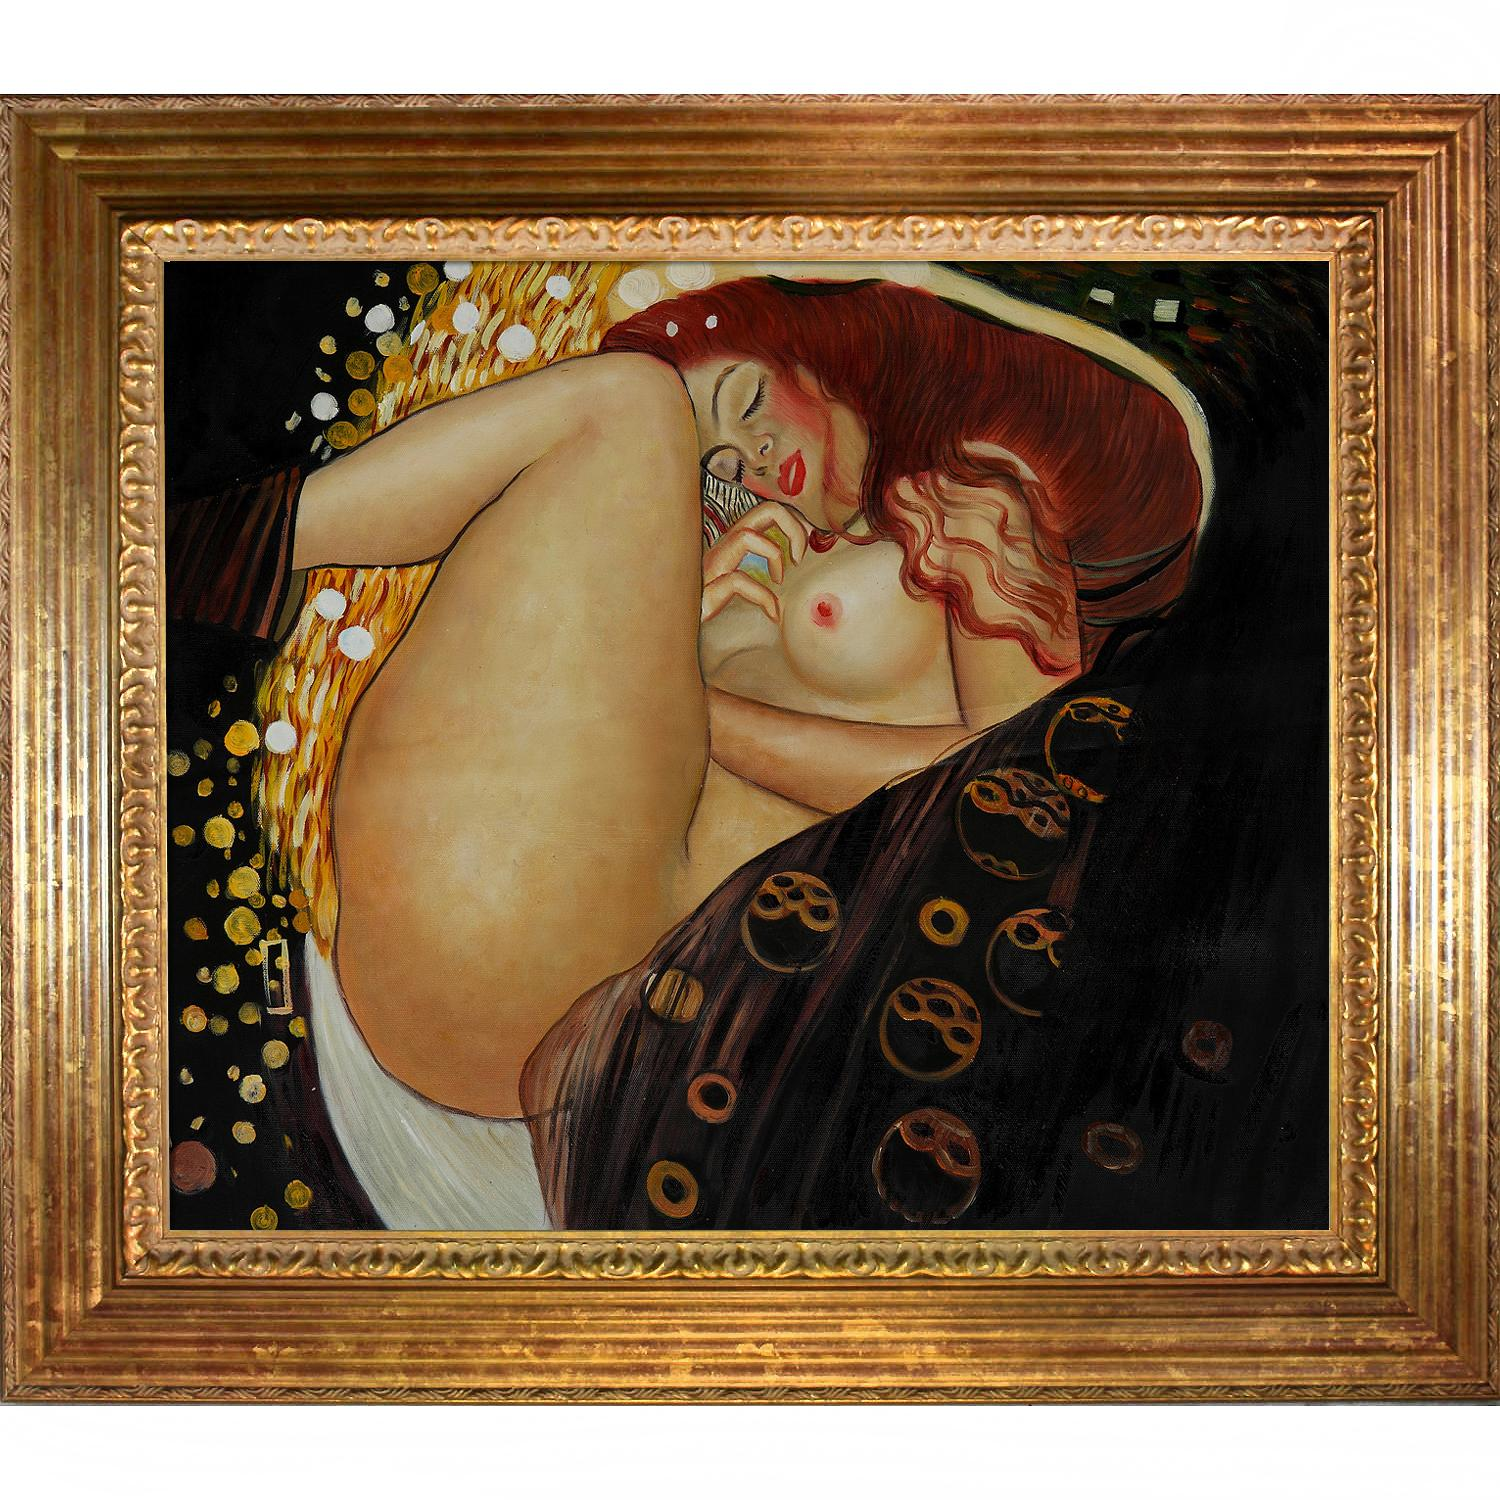 Gustav klimt 39 danae 39 framed hand painted canvas art for Gustav klimt original paintings for sale